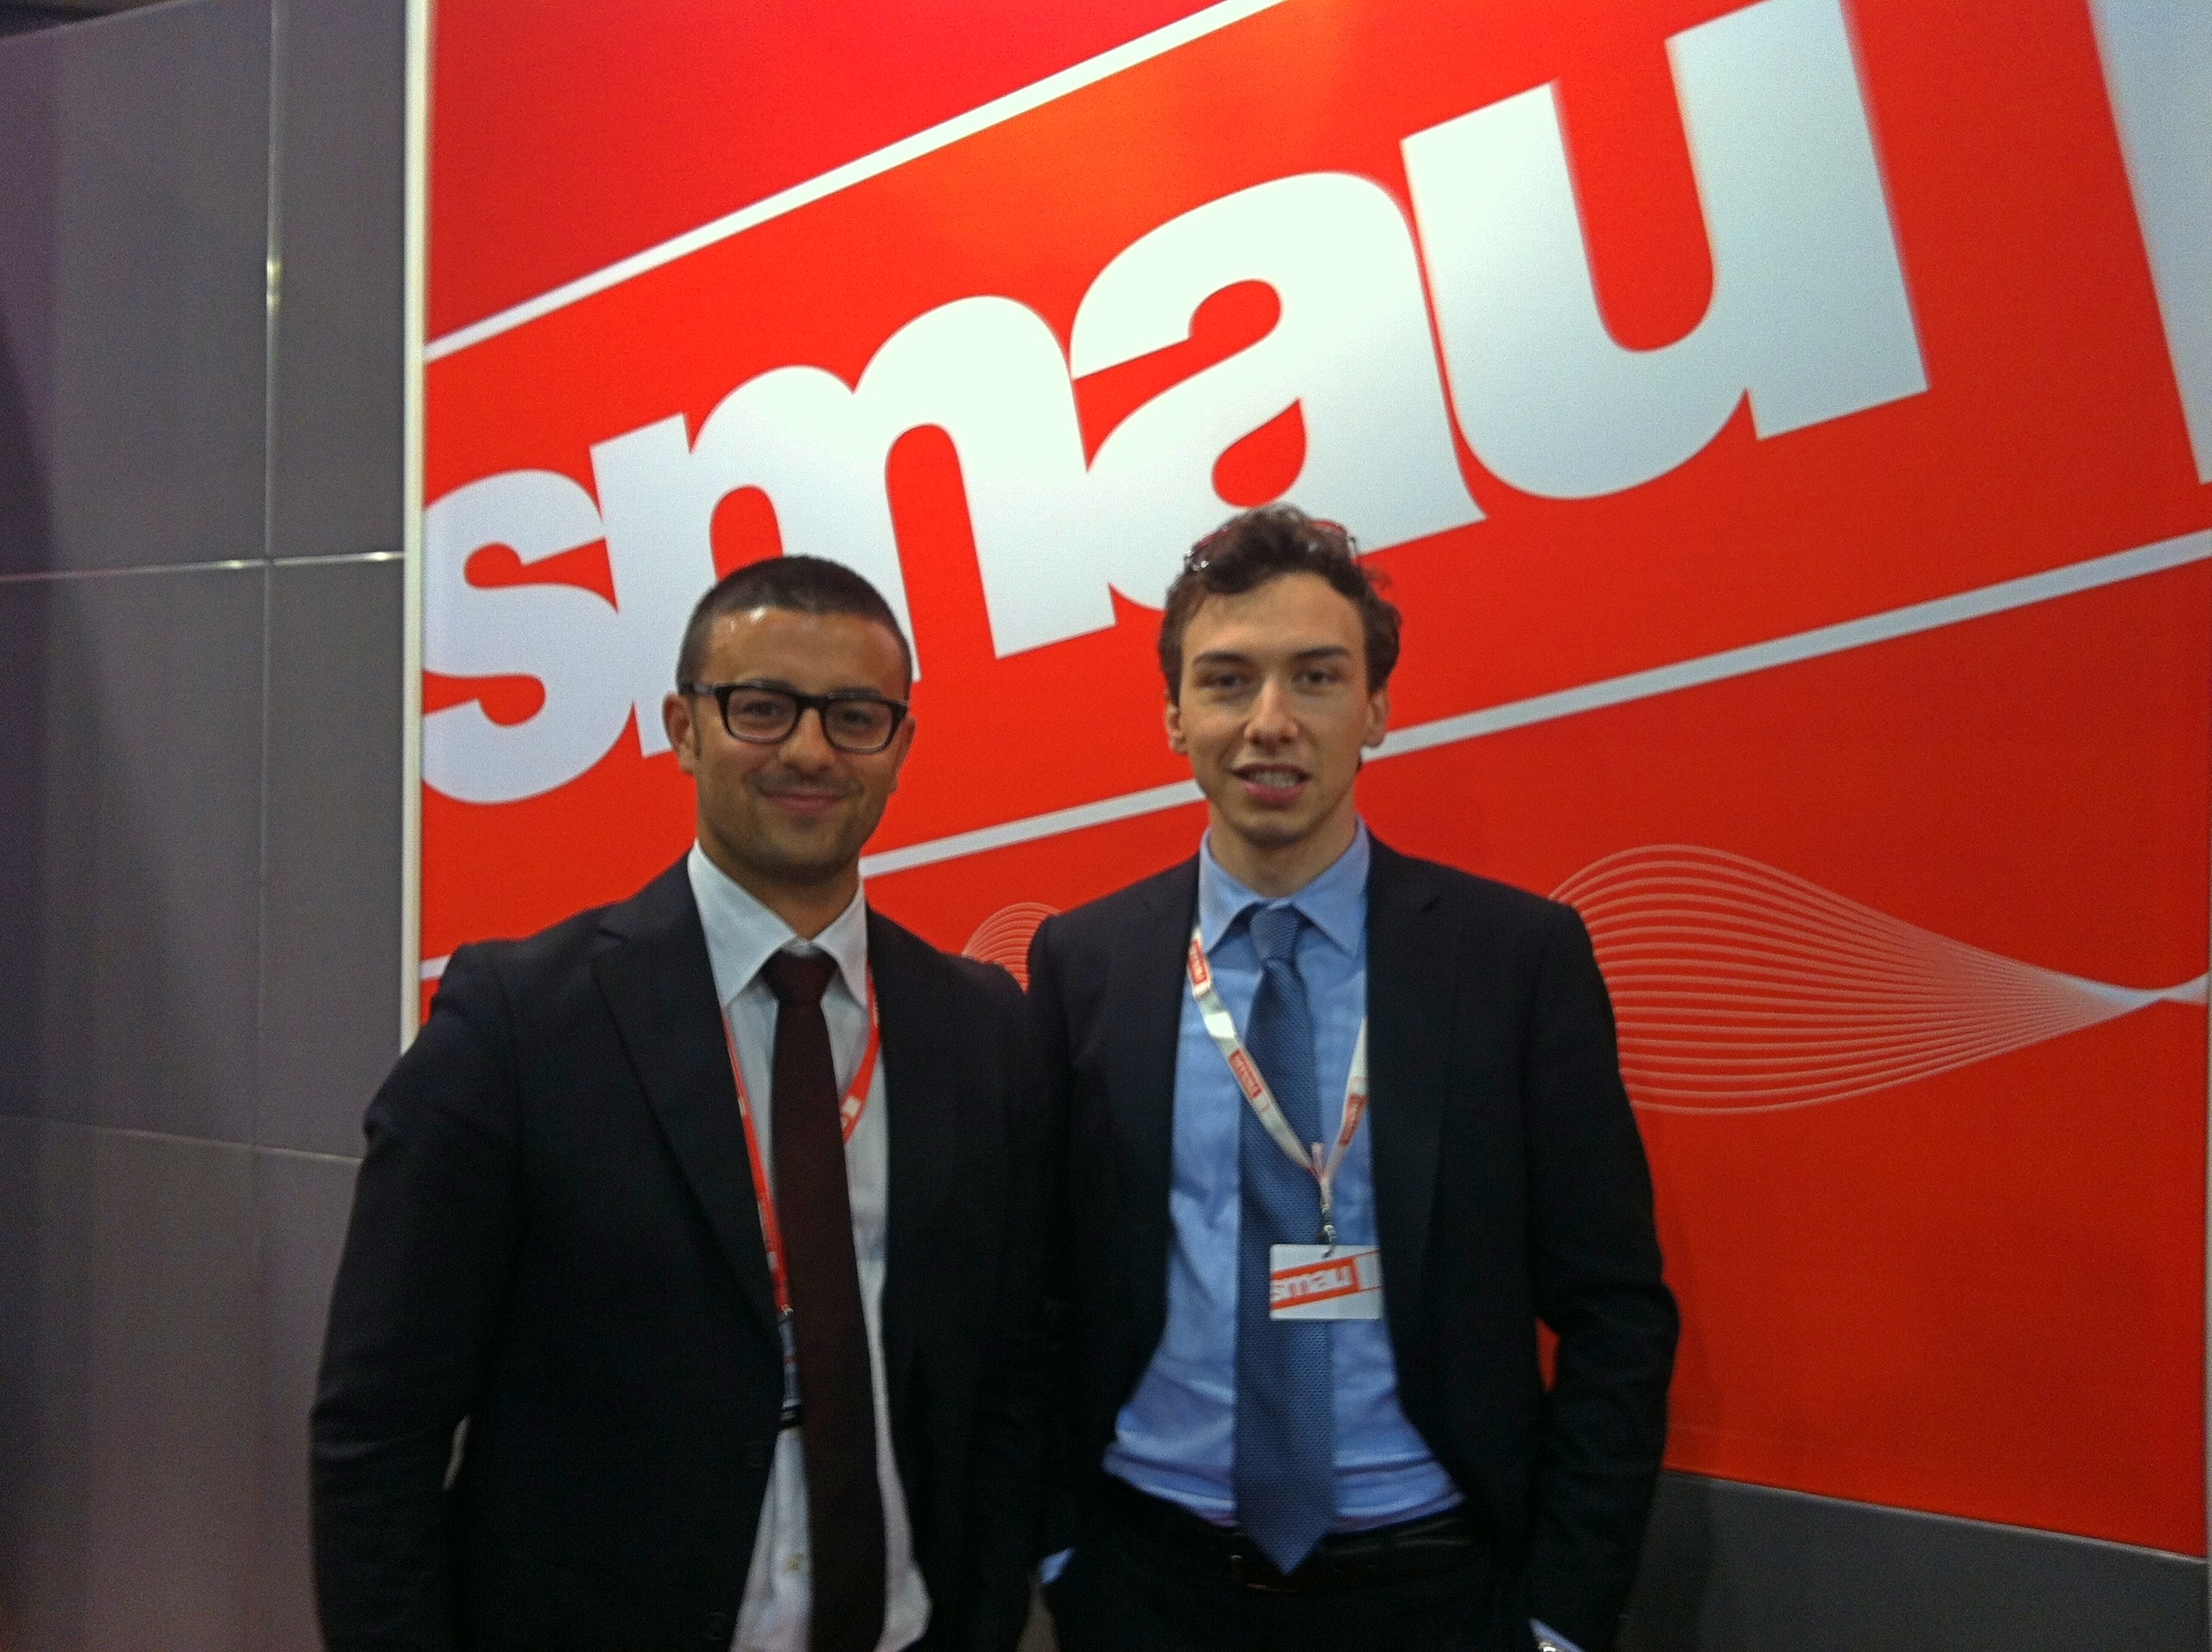 Marco Volpi di SMAU e Federico Lagni di AreaNetworking.it